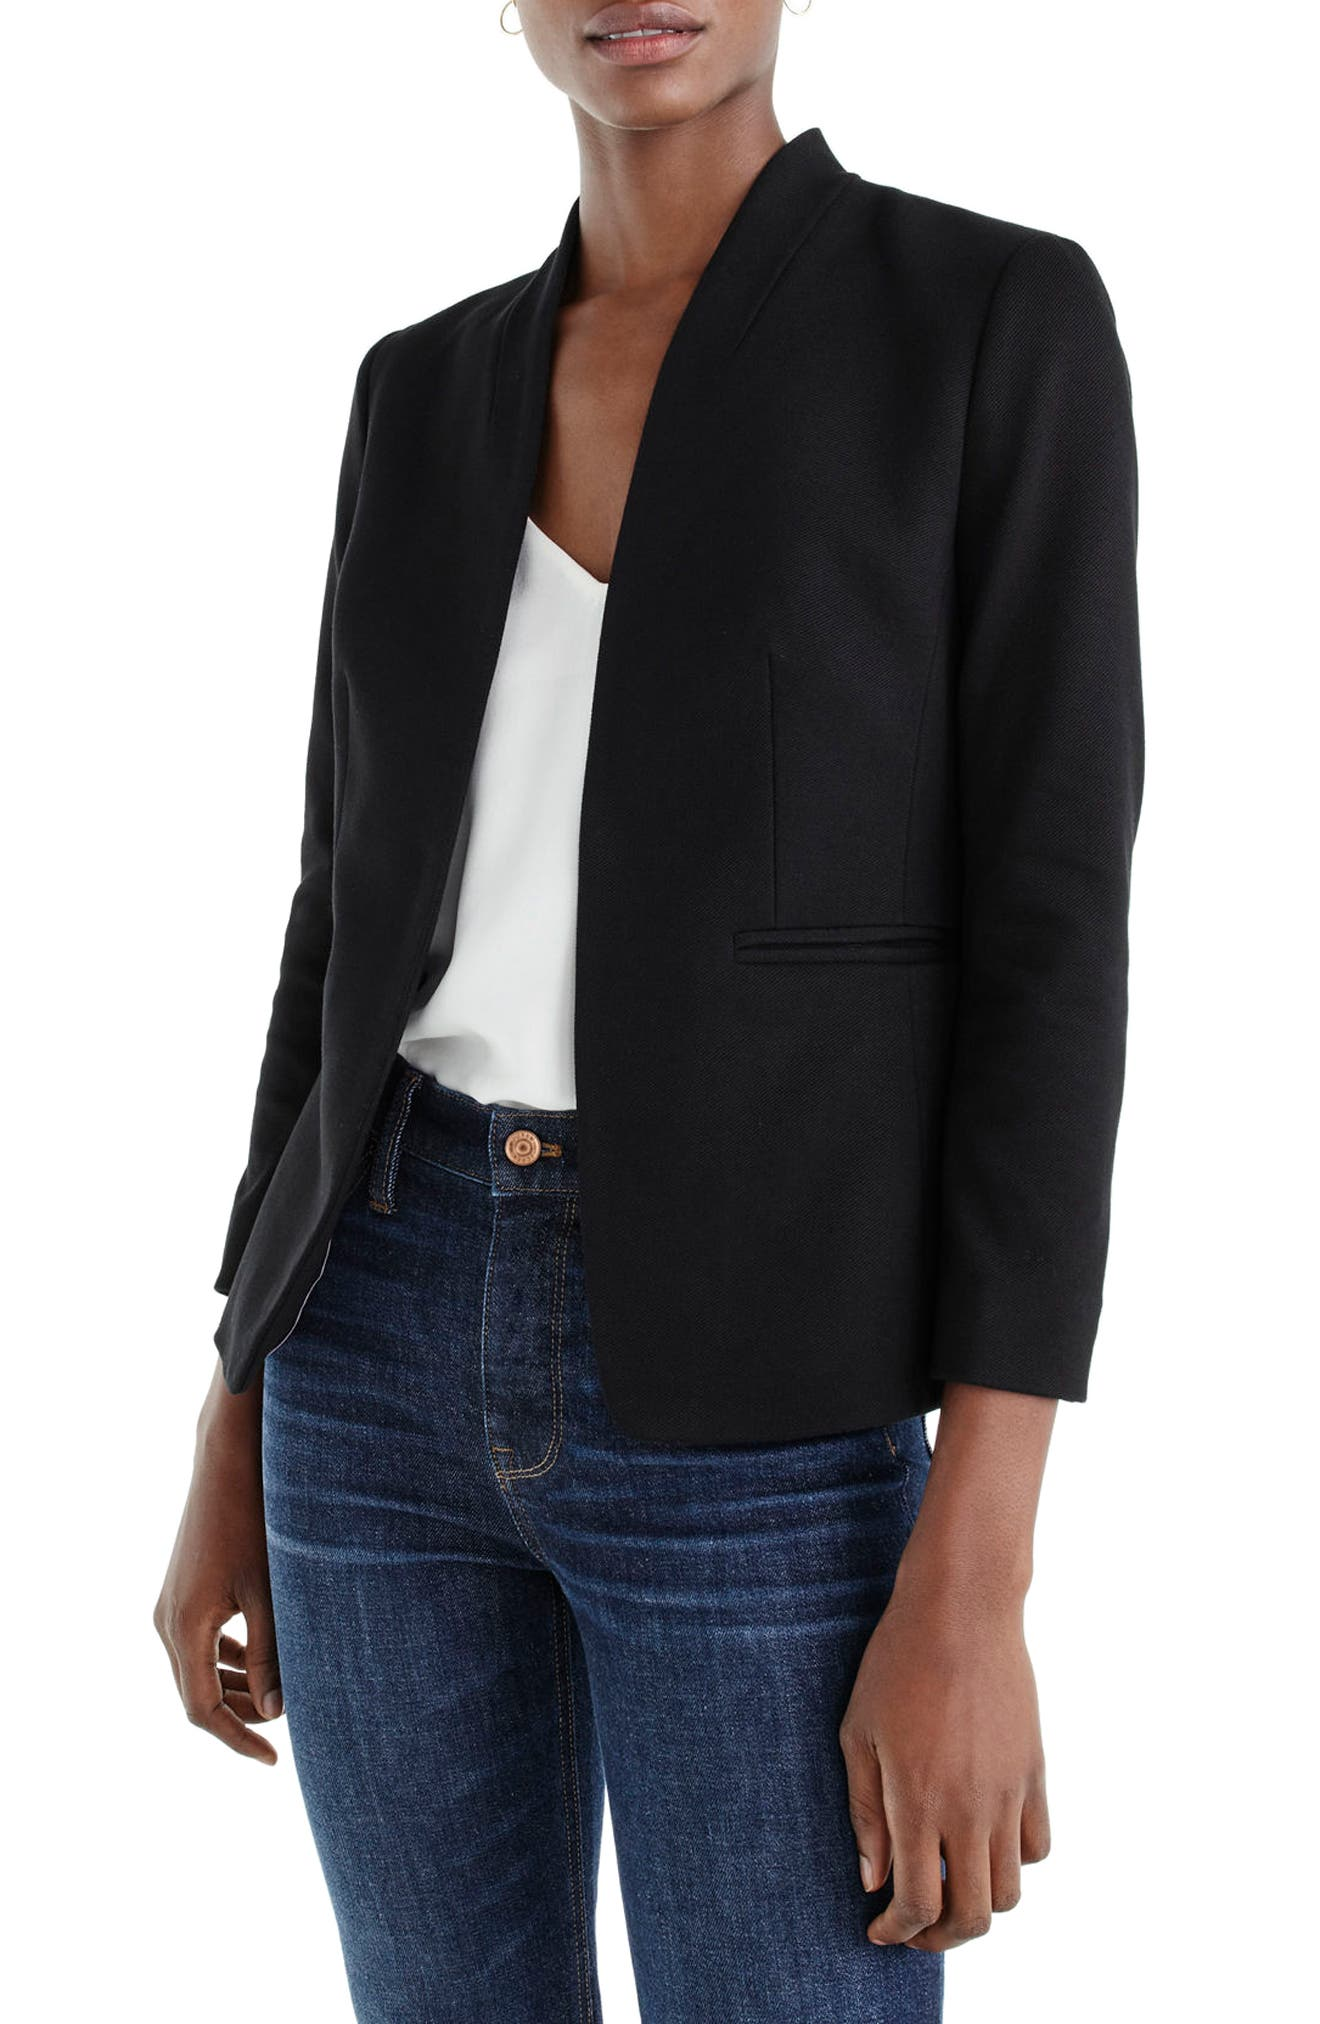 J crew womens jacket sale